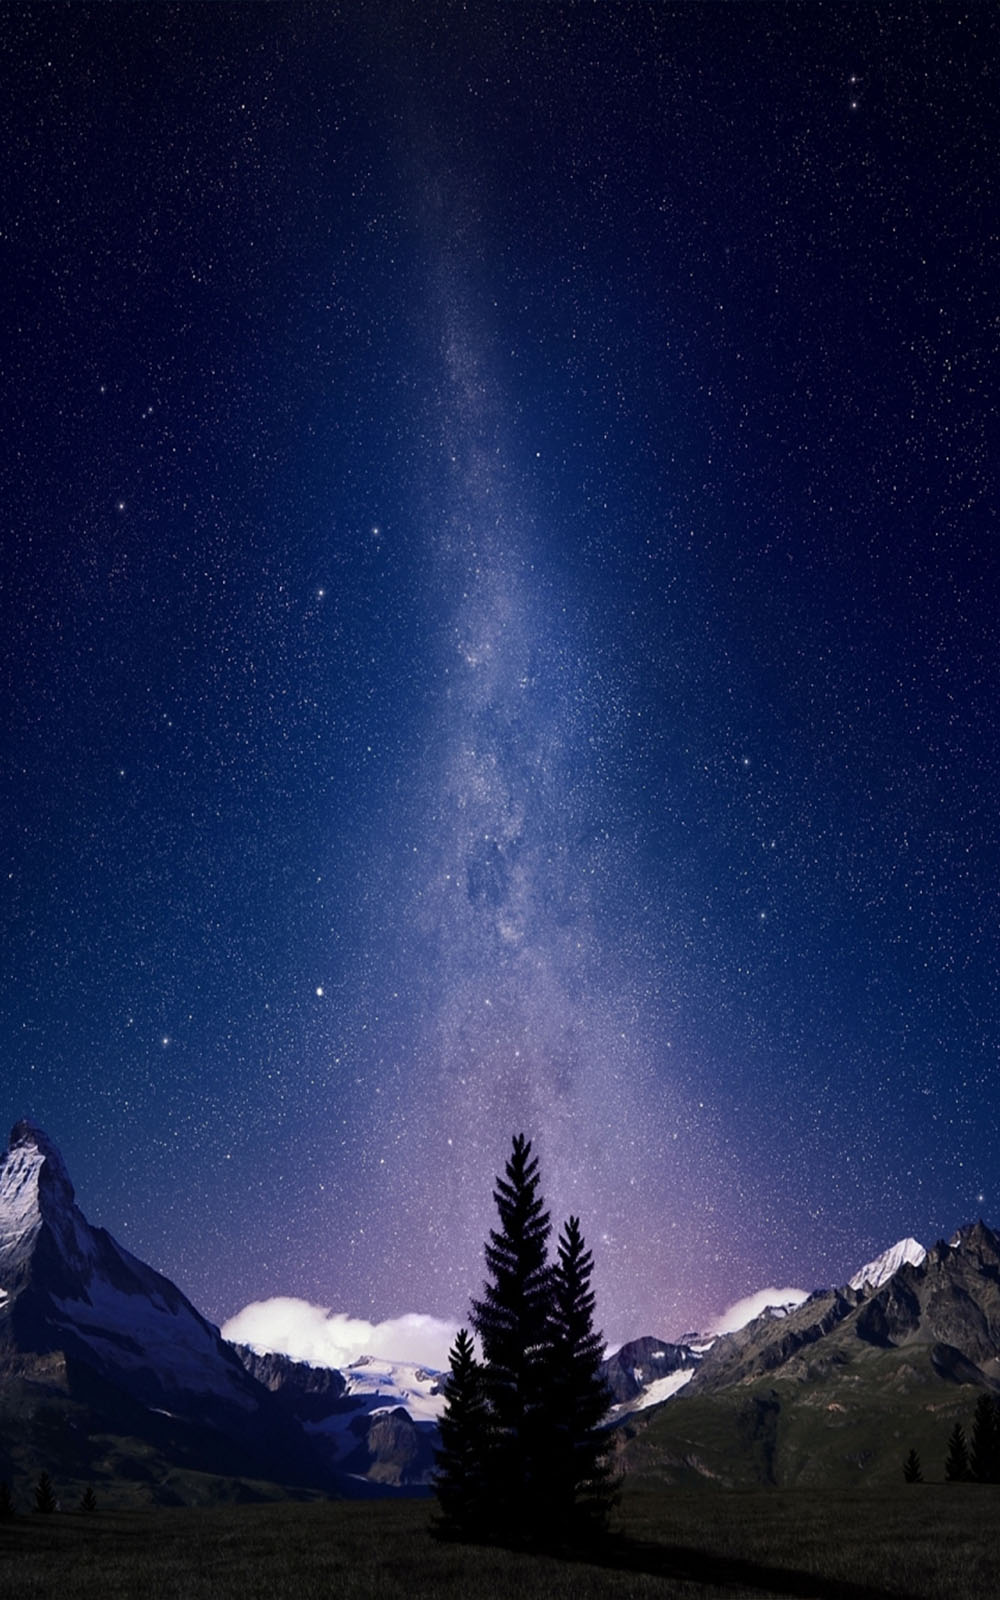 Bmw Girl Wallpaper Download Milky Way Night Sky Mountains Free Pure 4k Ultra